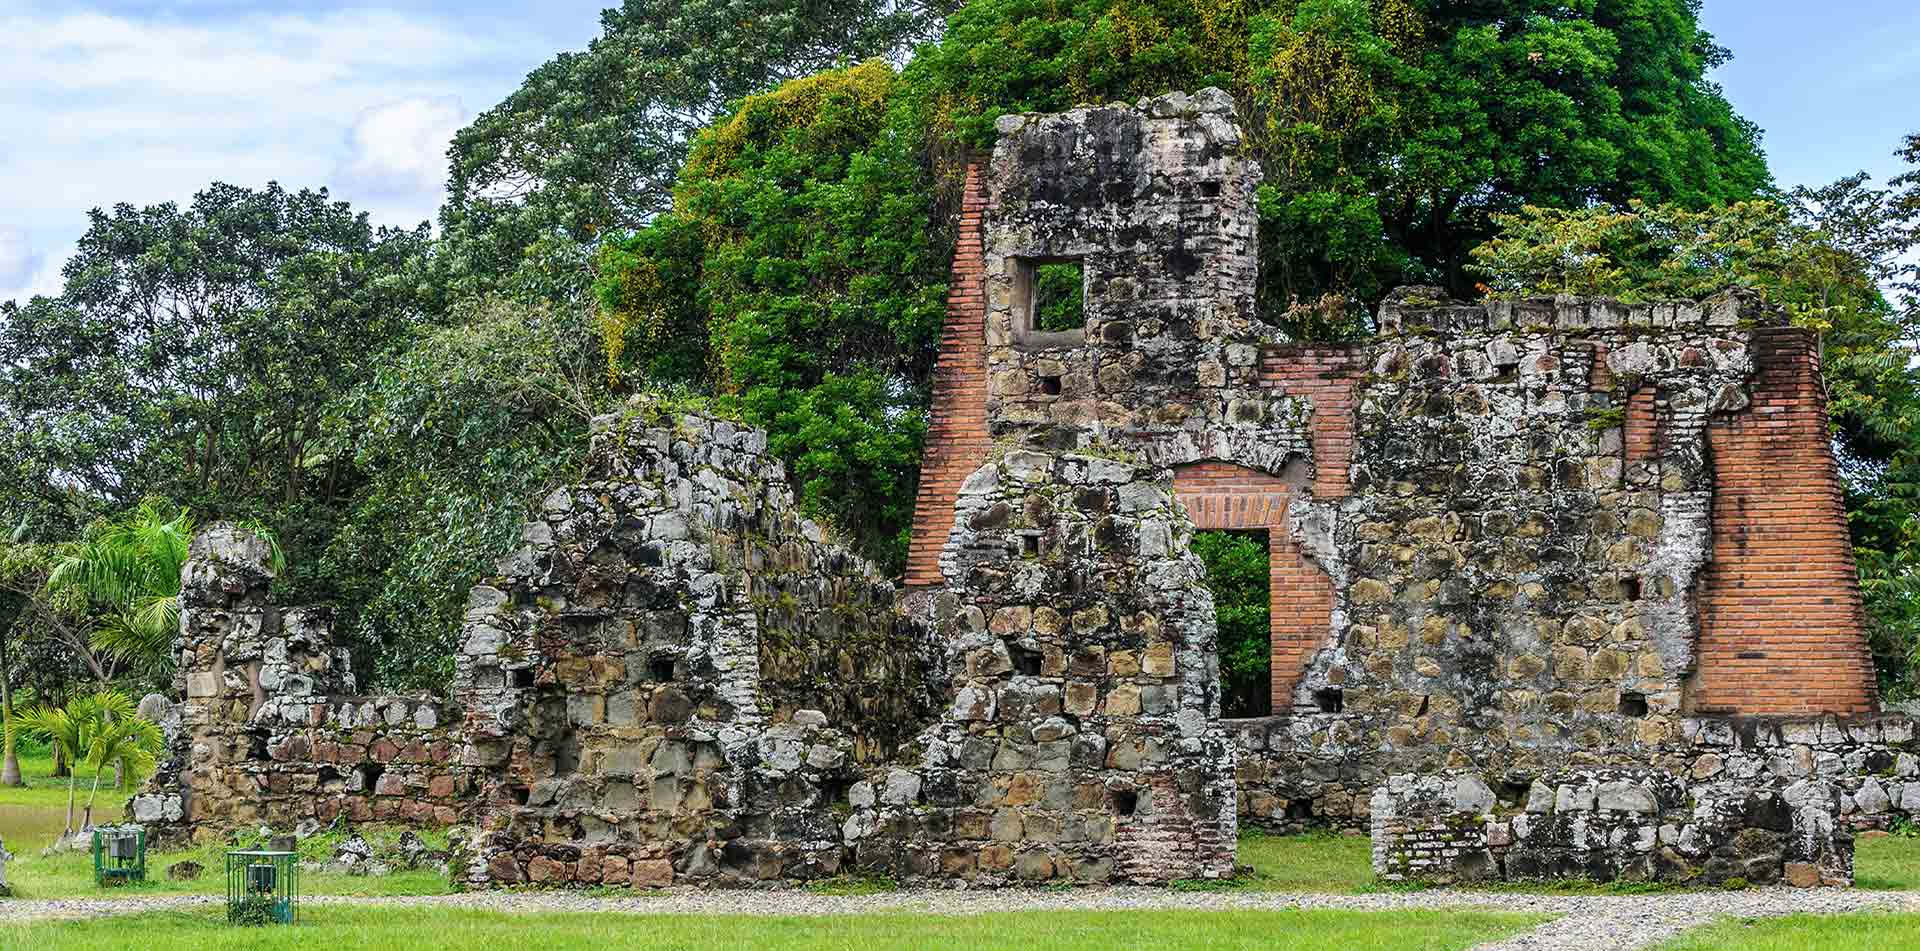 Central America Panama City Viejo ruins of a historic building - luxury vacation destinations